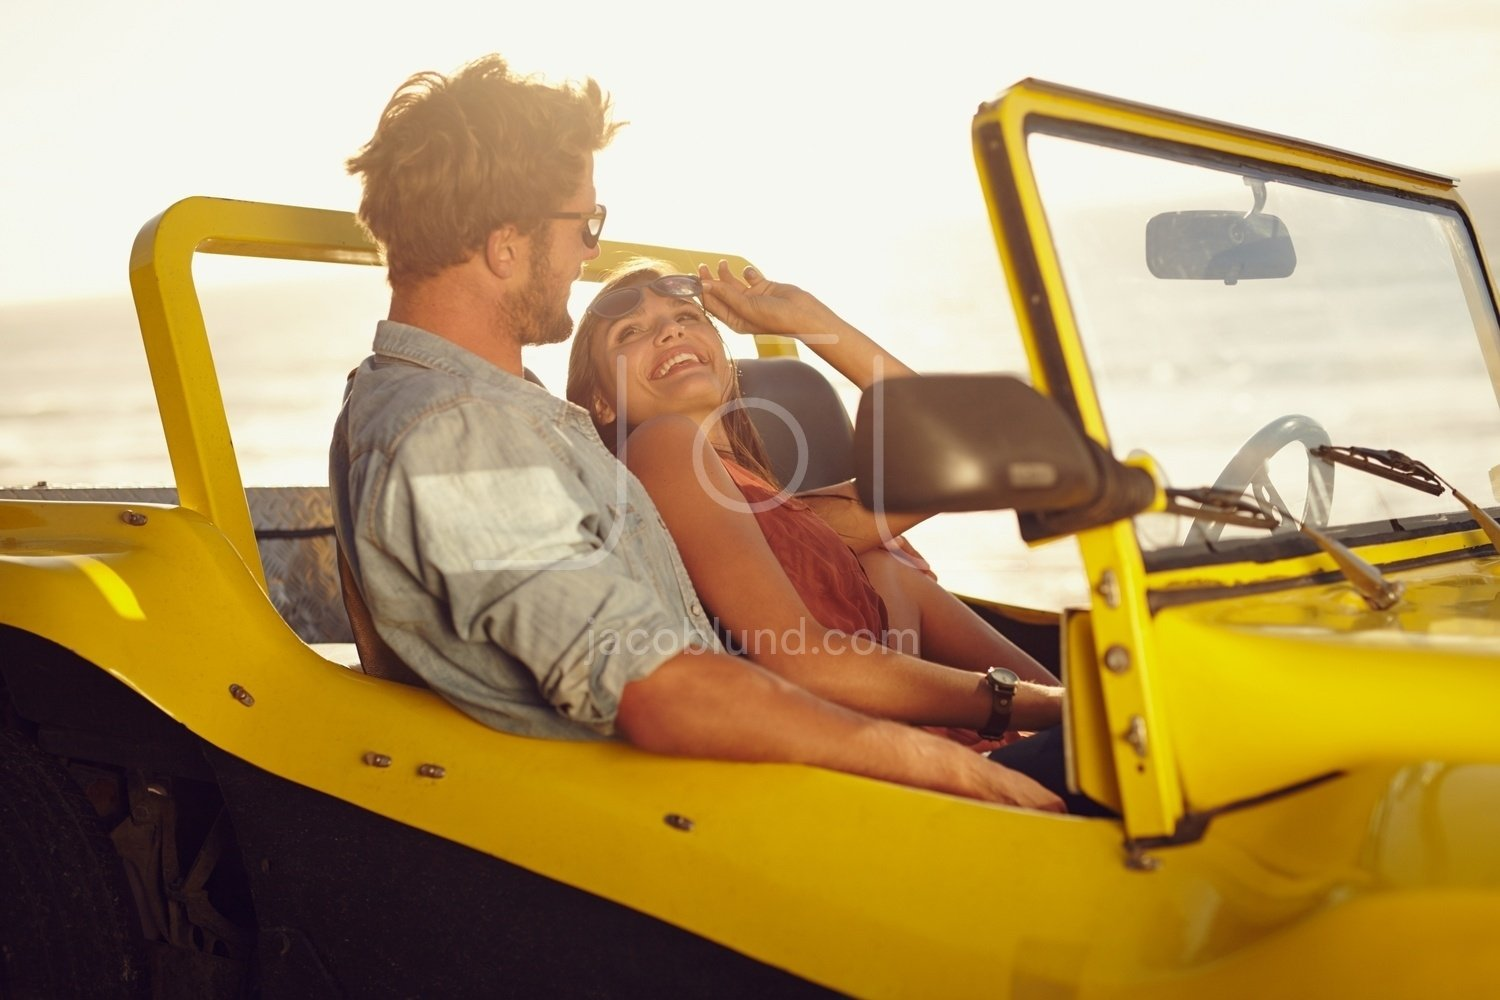 Romantic Young Couple In A Car Jacob Lund Photography Store Premium Stock Photo